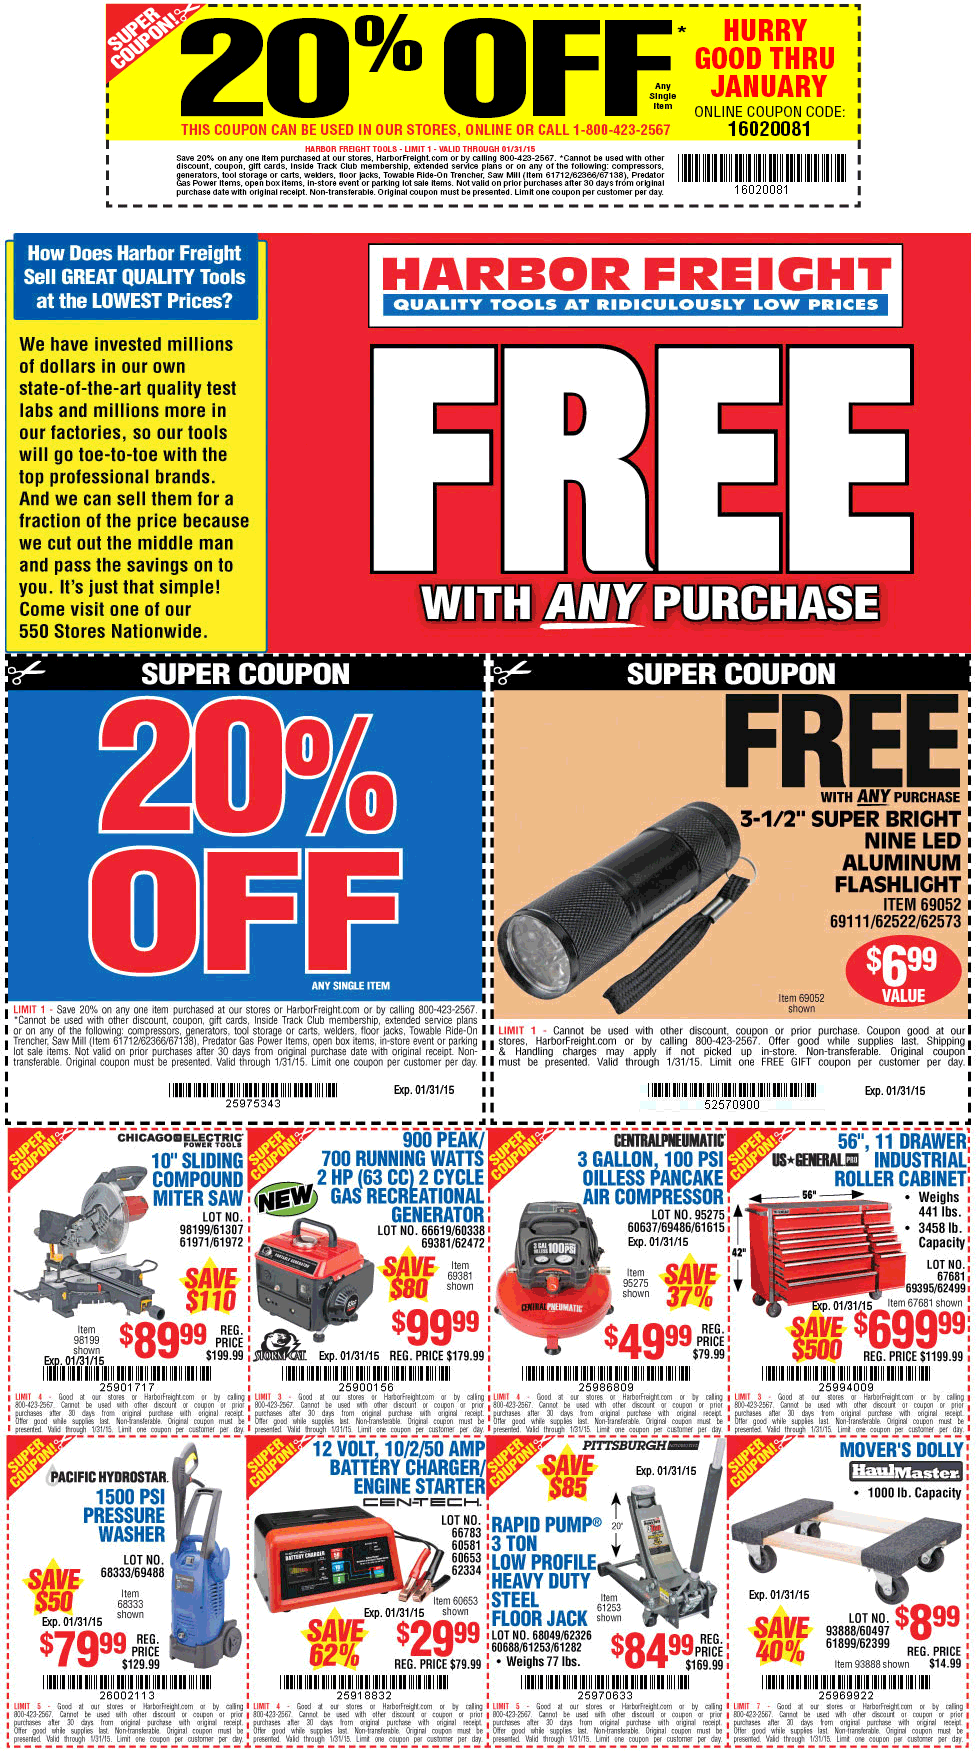 Harbor Freight Coupon October 2016 20% off a single item at Harbor Freight Tools, or online via promo code 16020081